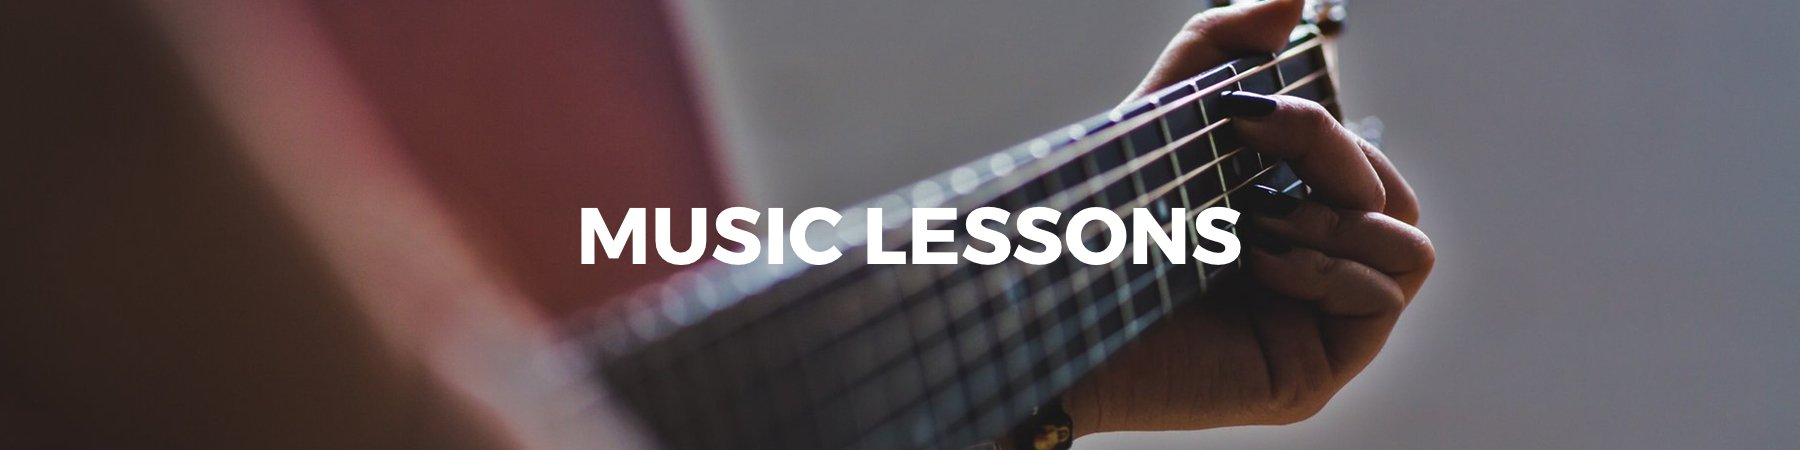 Music Lessons and Instruction